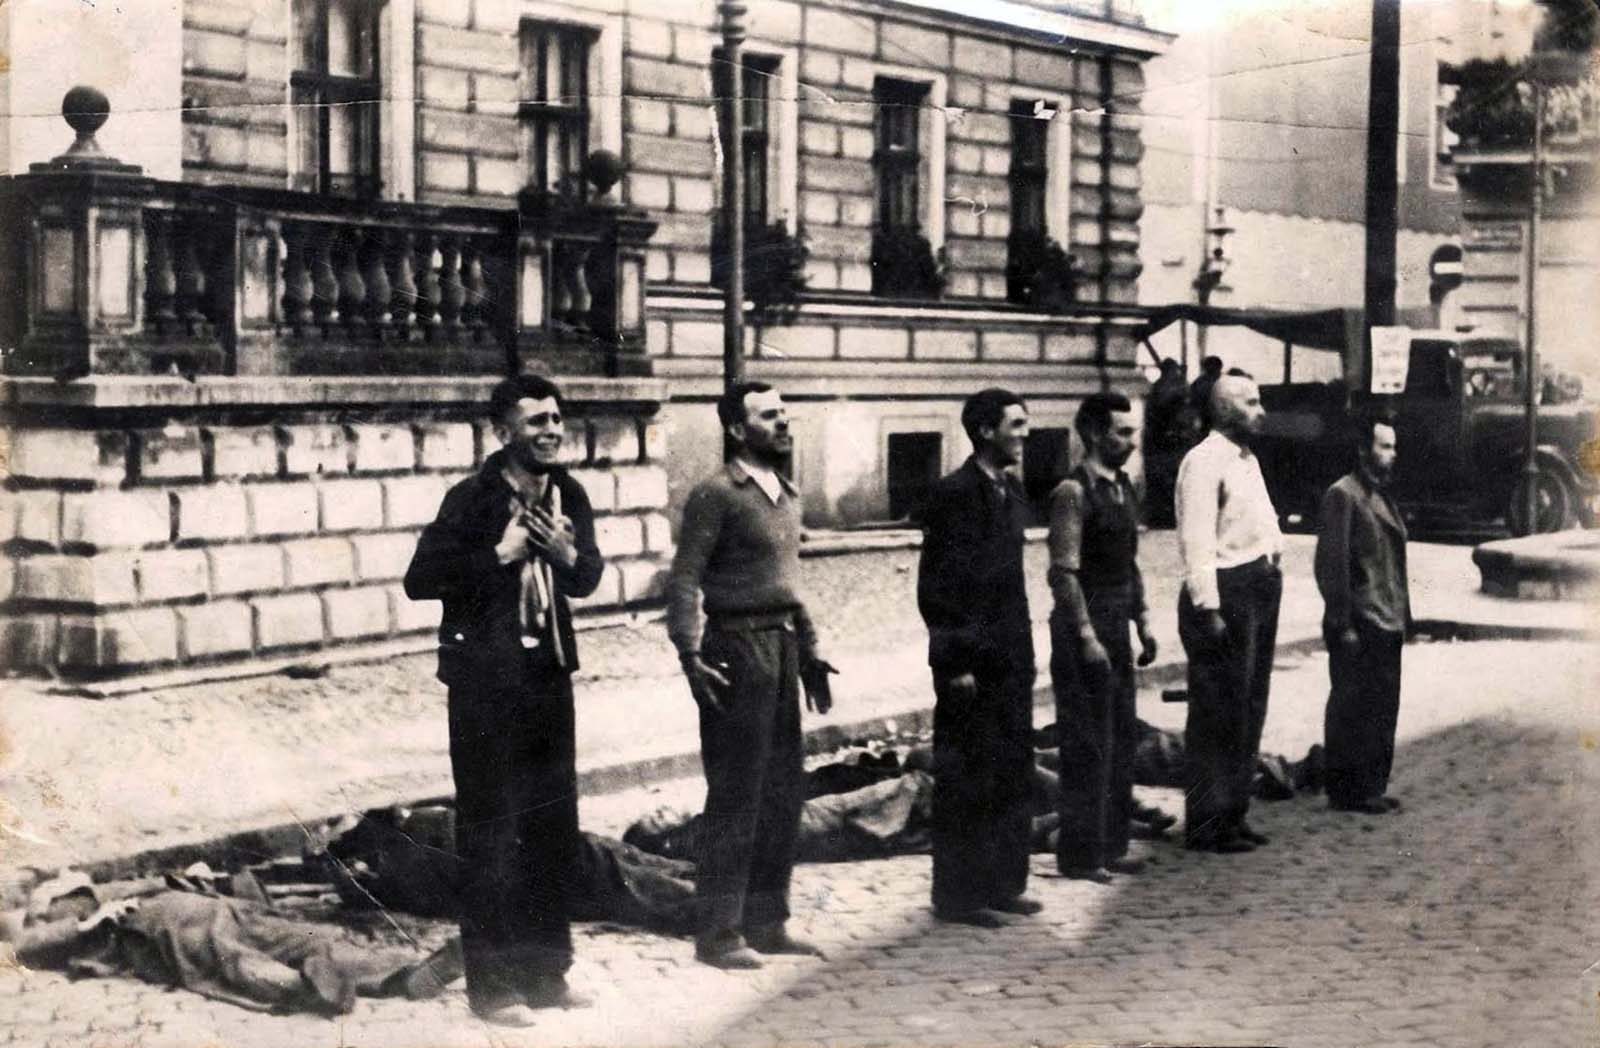 Facing the Death: Poles shot by Germans in Bydgoszcz, 9 September 1939.